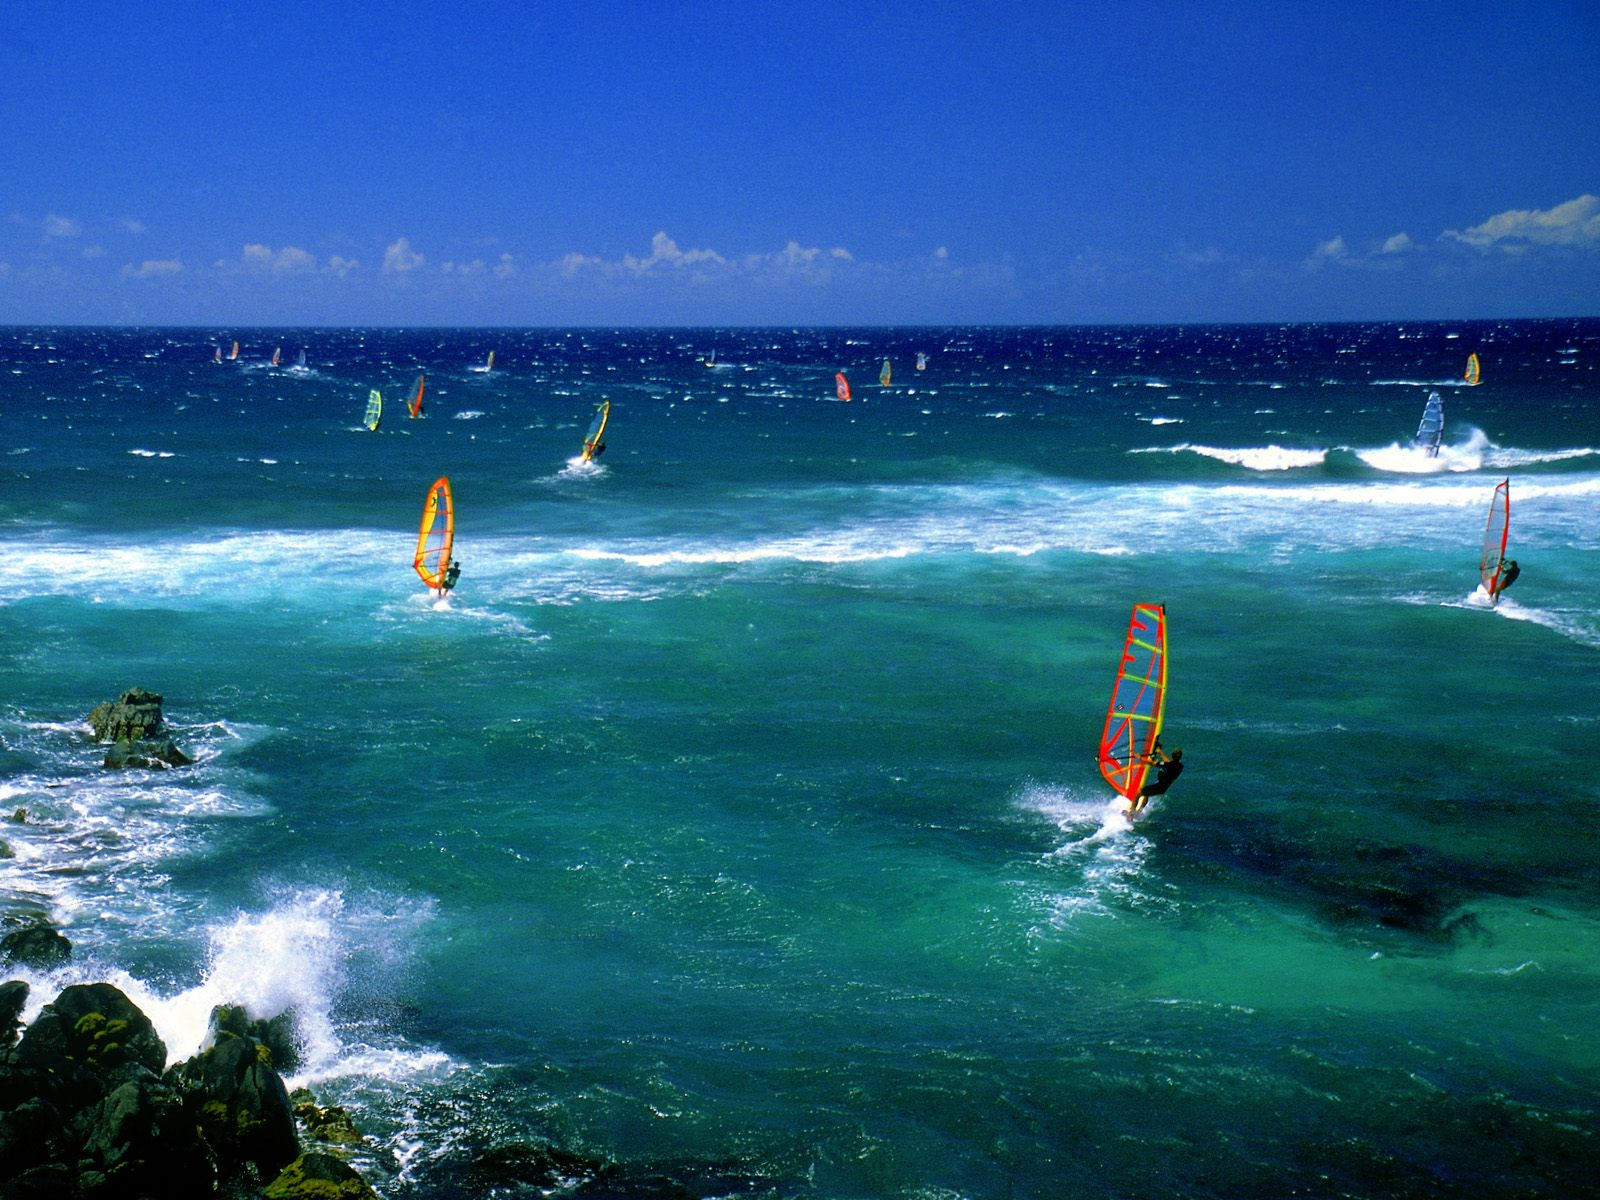 Windsurfers   Maui   Surfing Wallpaper 23340150 1600x1200